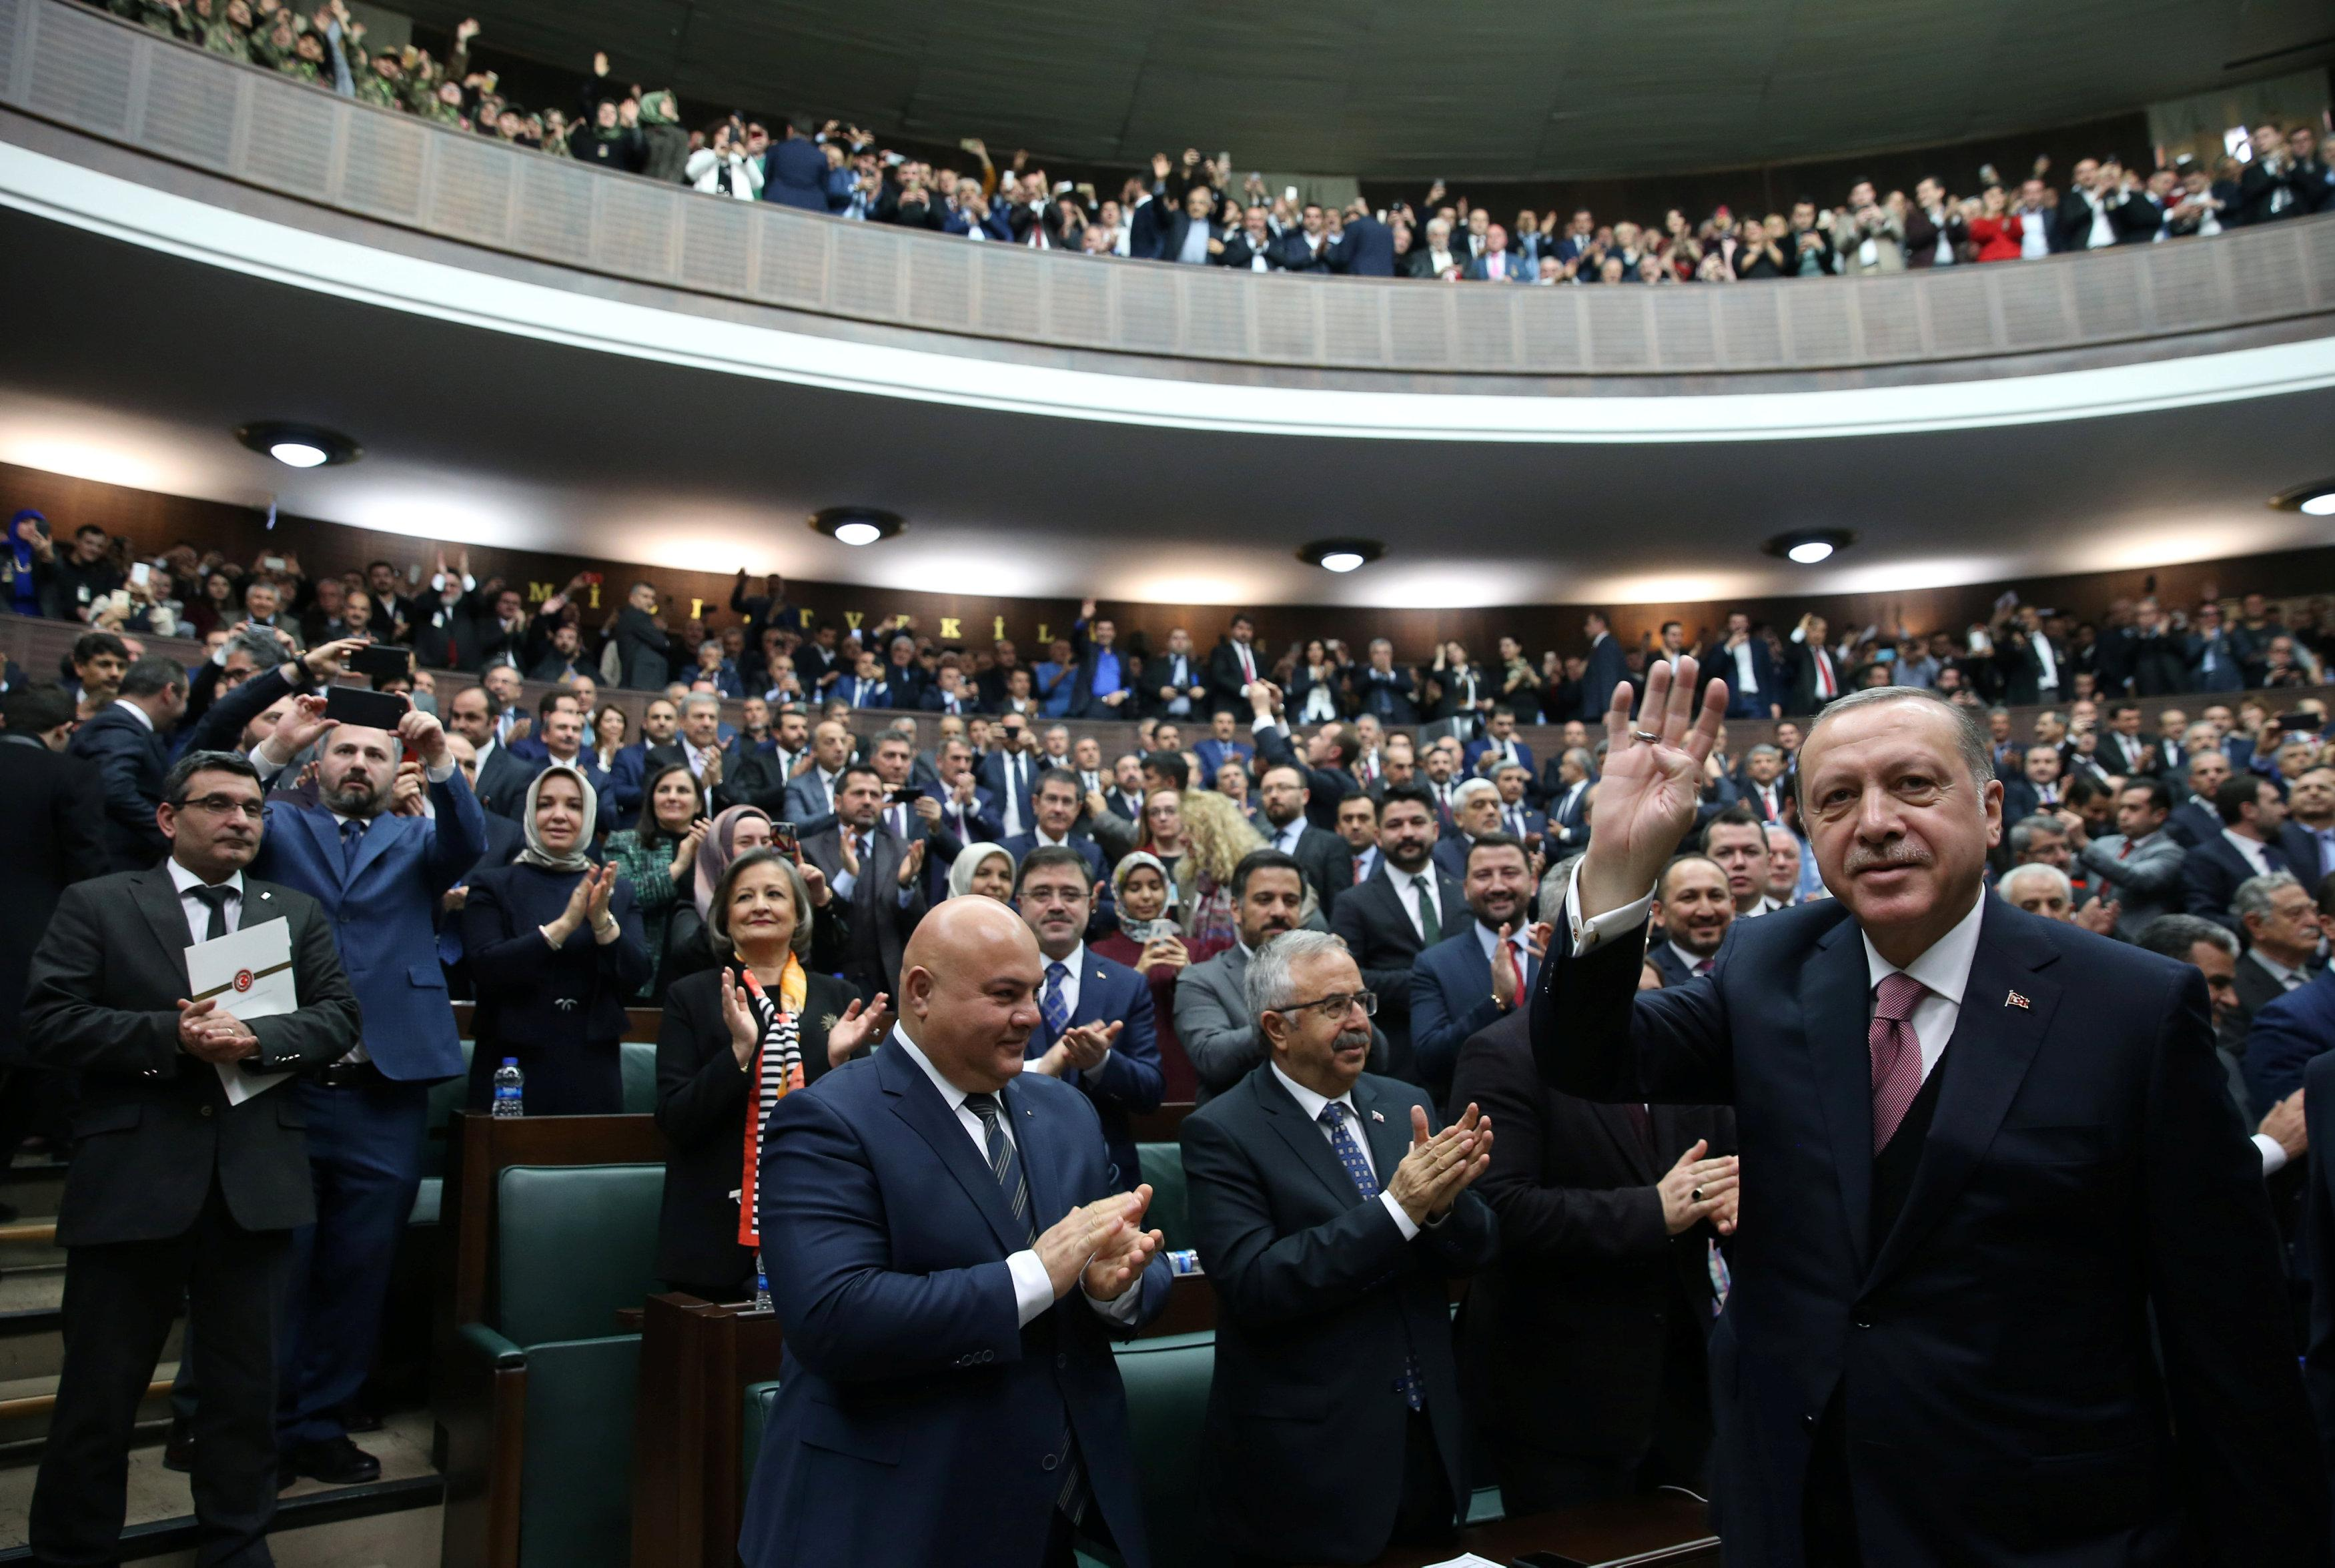 Turkish President Tayyip Erdogan greets members of parliament from his ruling AK Party (AKP) during a meeting at the Turkish parliament in Ankara, Turkey, February 20, 2018. Murat Cetinmuhurdar/Presidential Palace/Handout via